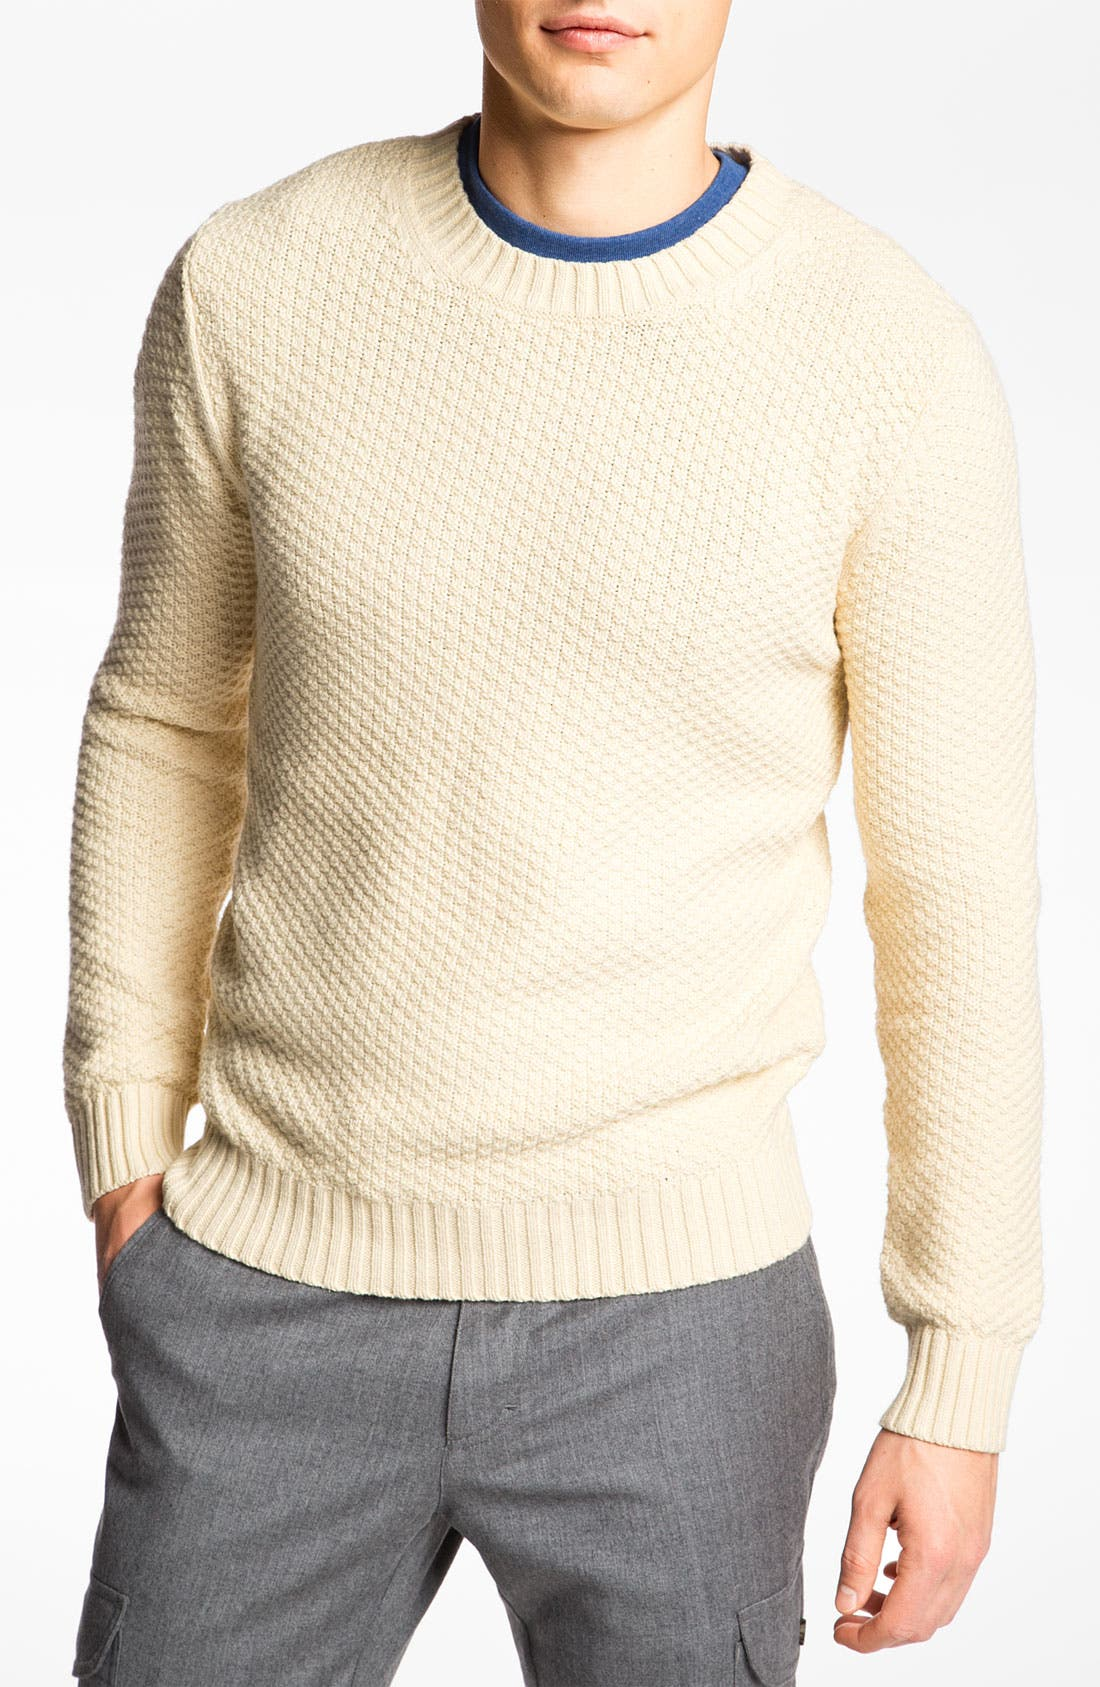 Main Image - Gant Rugger 'Pineapple Knit' Sweater